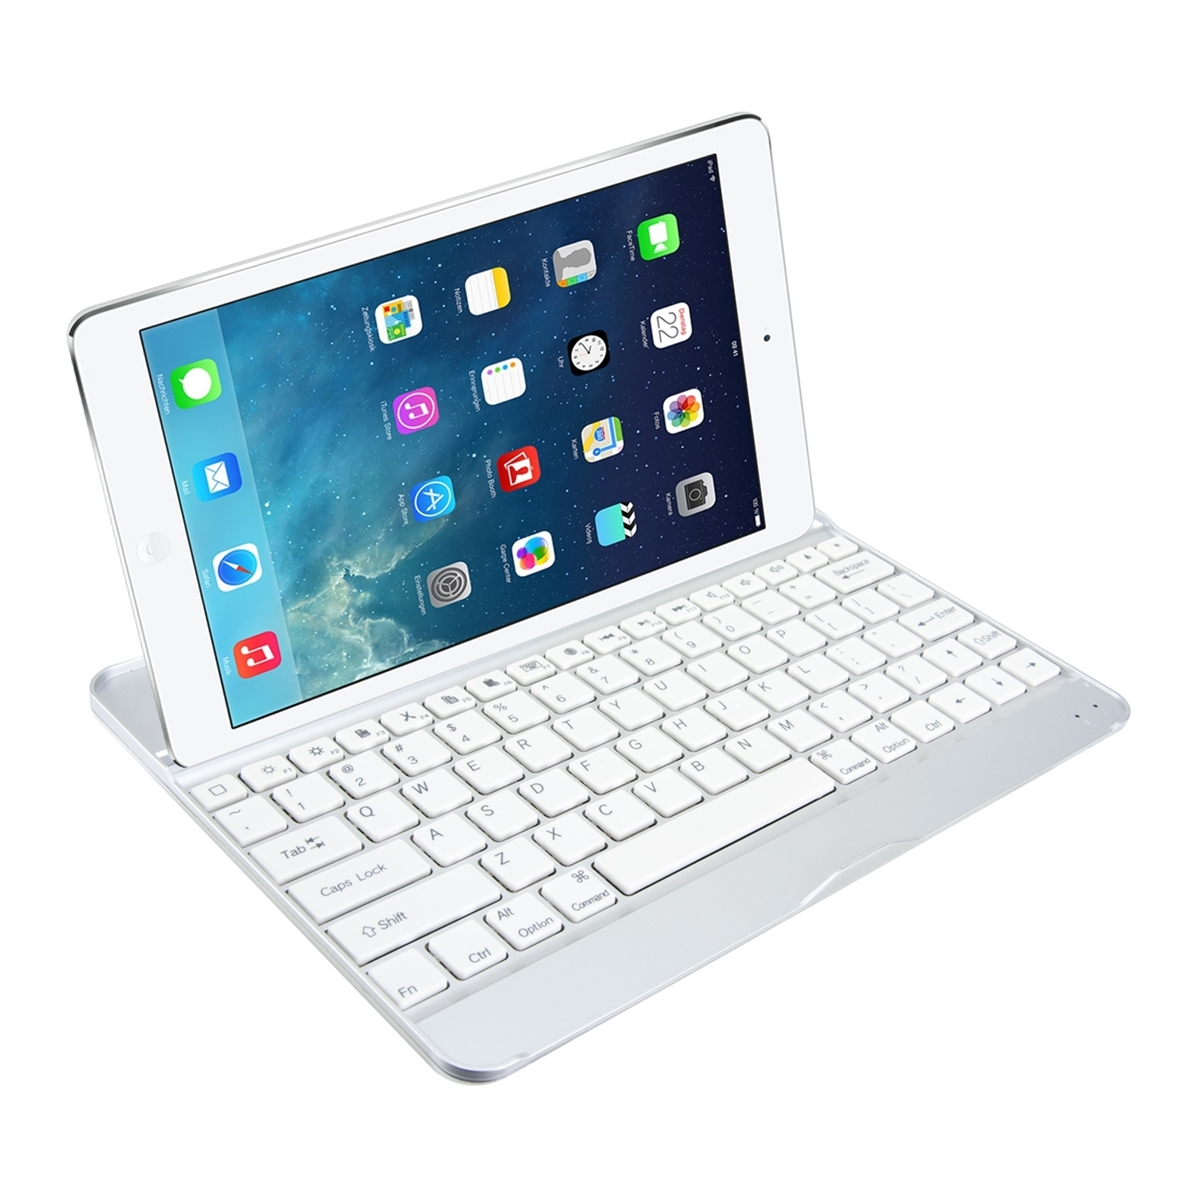 schutz h lle bluetooth keyboard f r apple ipad air tablet tasche tastatur case ebay. Black Bedroom Furniture Sets. Home Design Ideas